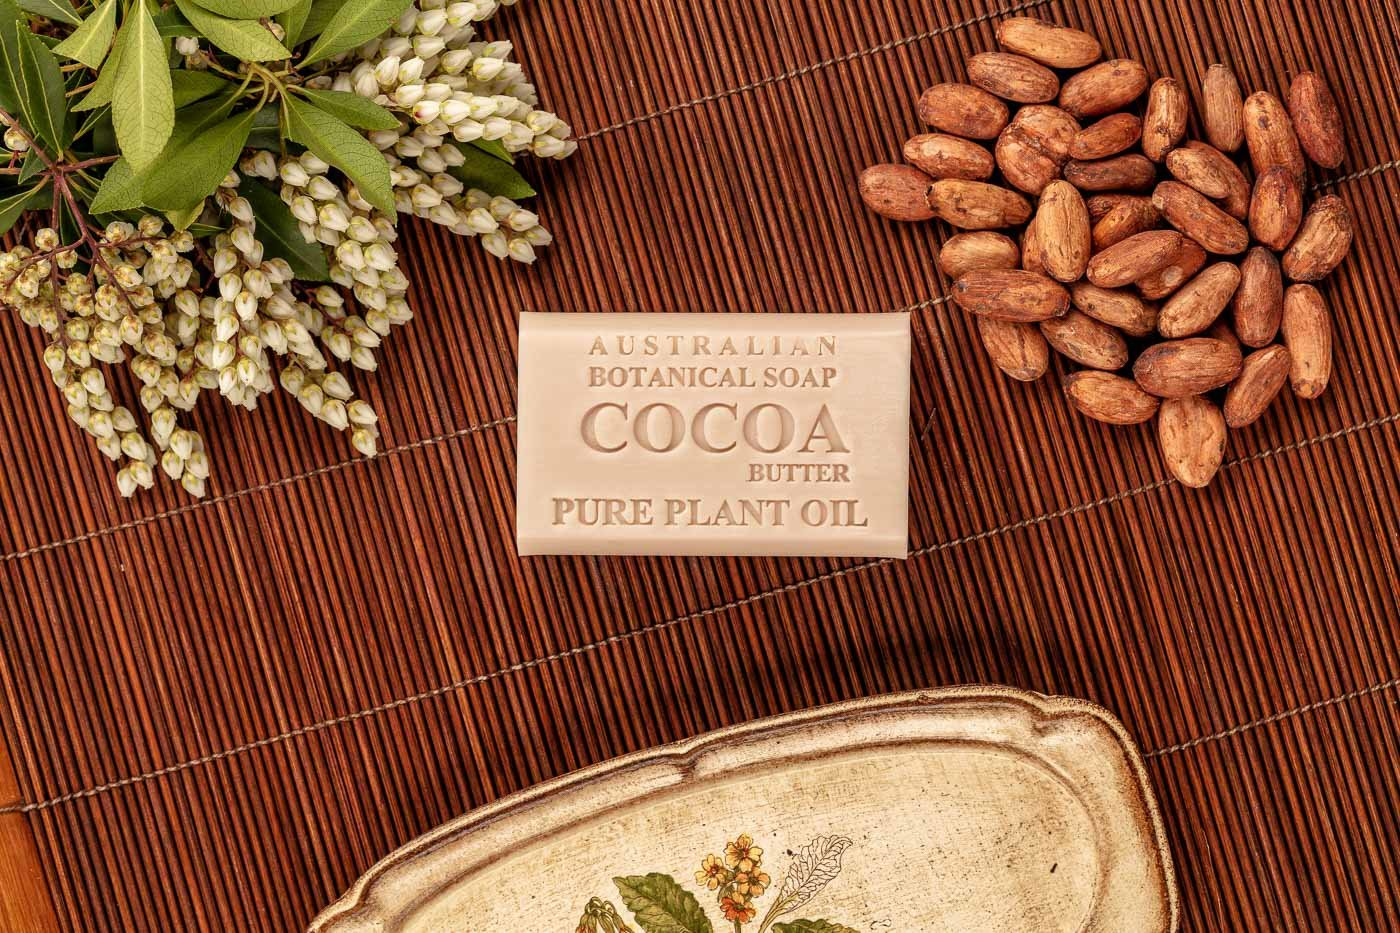 Australian Botanic Soap Cocoa with bean on bamboo mat over the top view